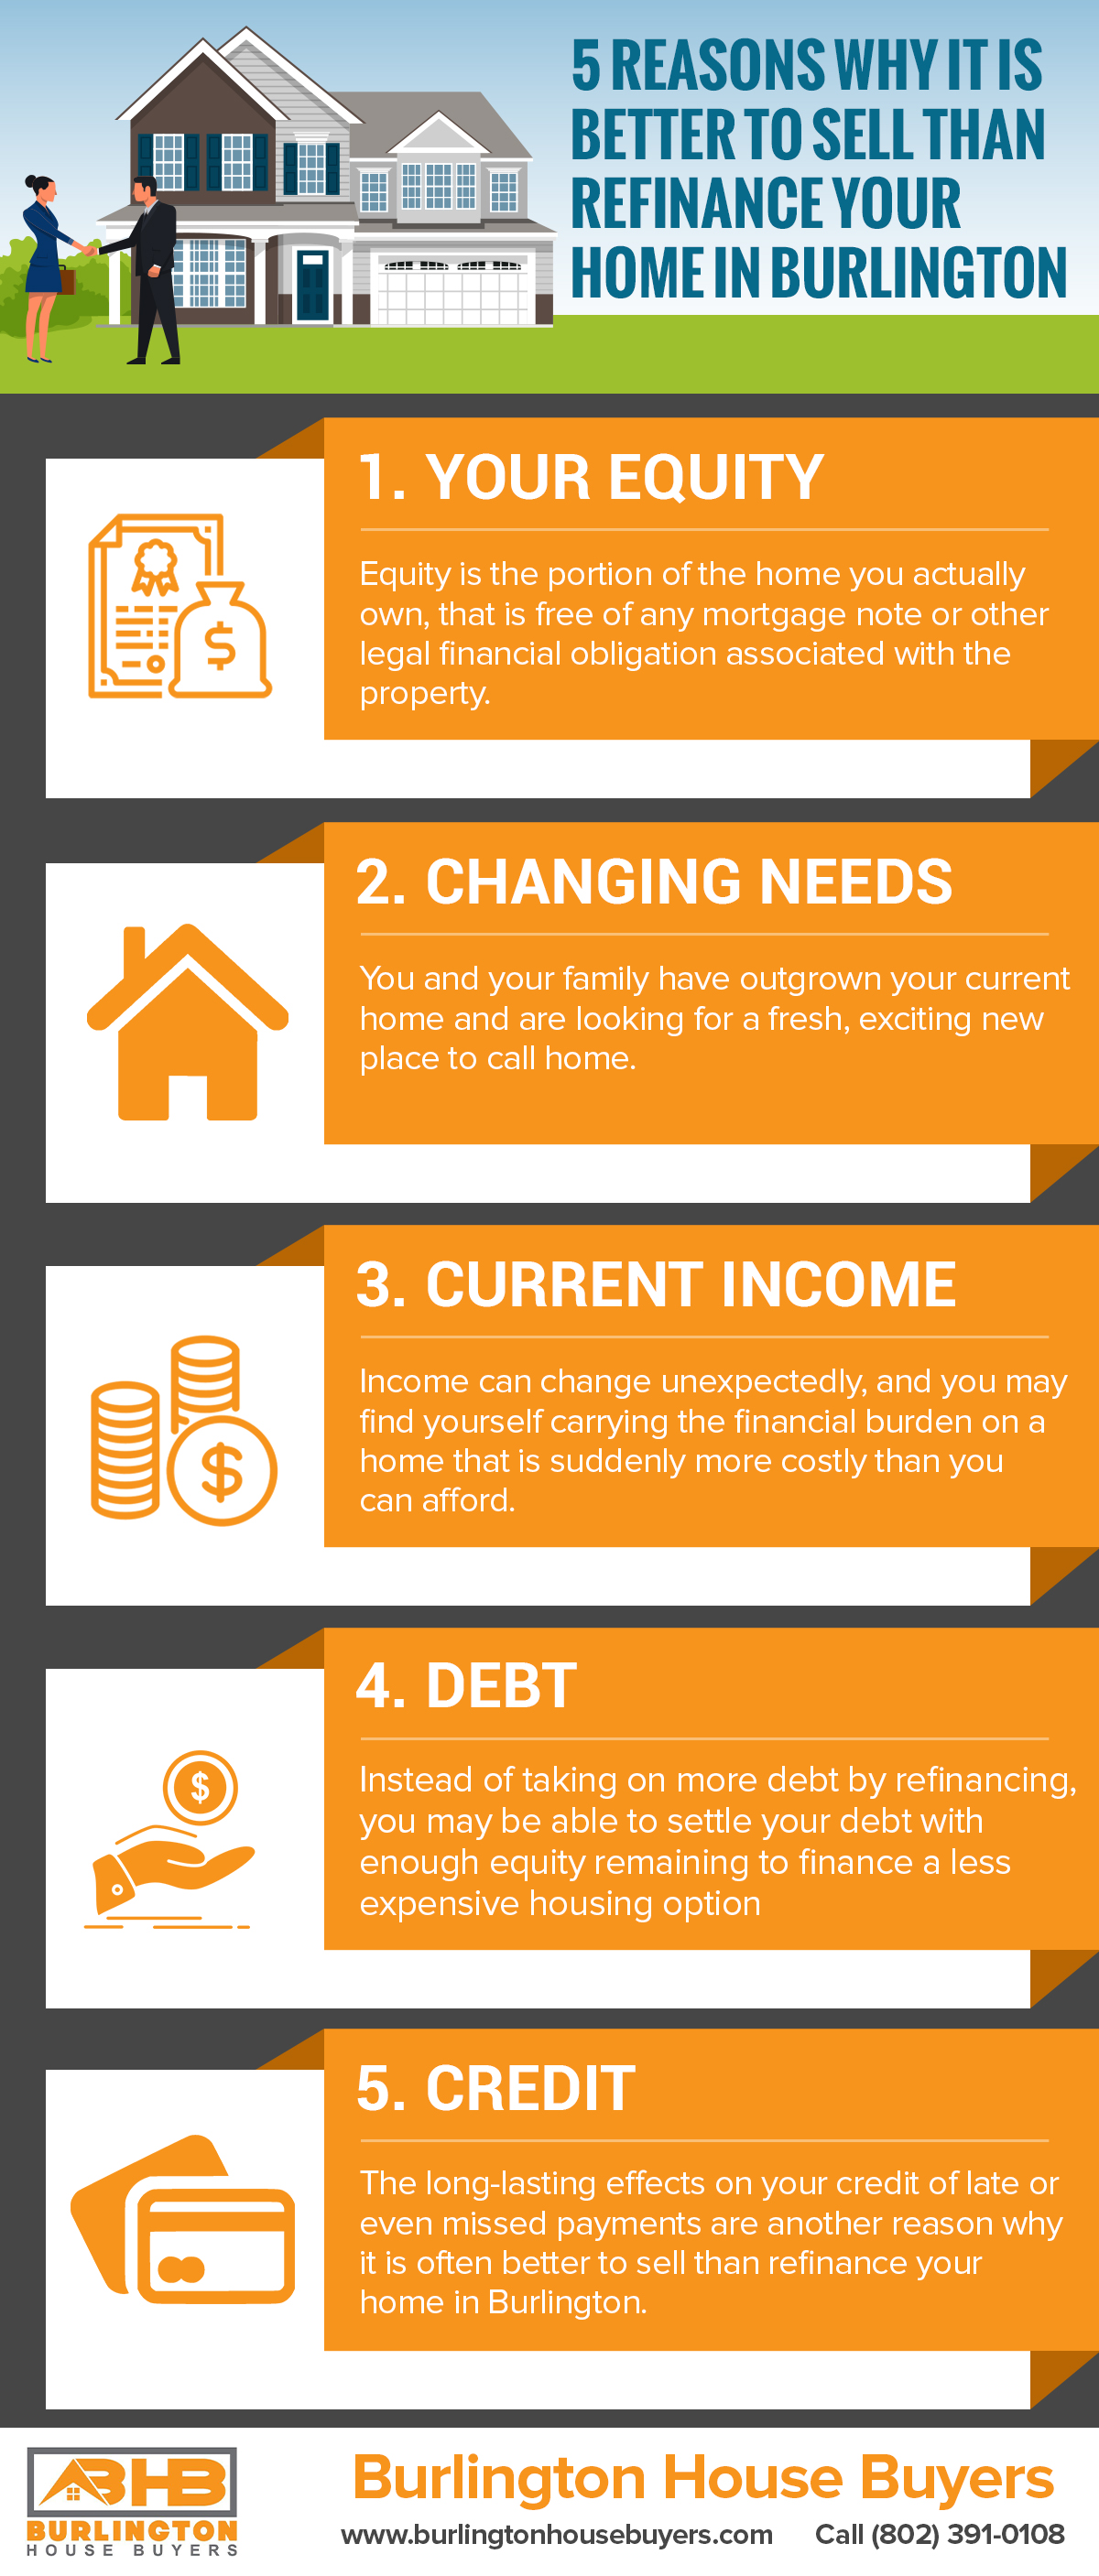 5 Reasons Why it is Better Sell Than Refinance Your Home in Burlington Infographic